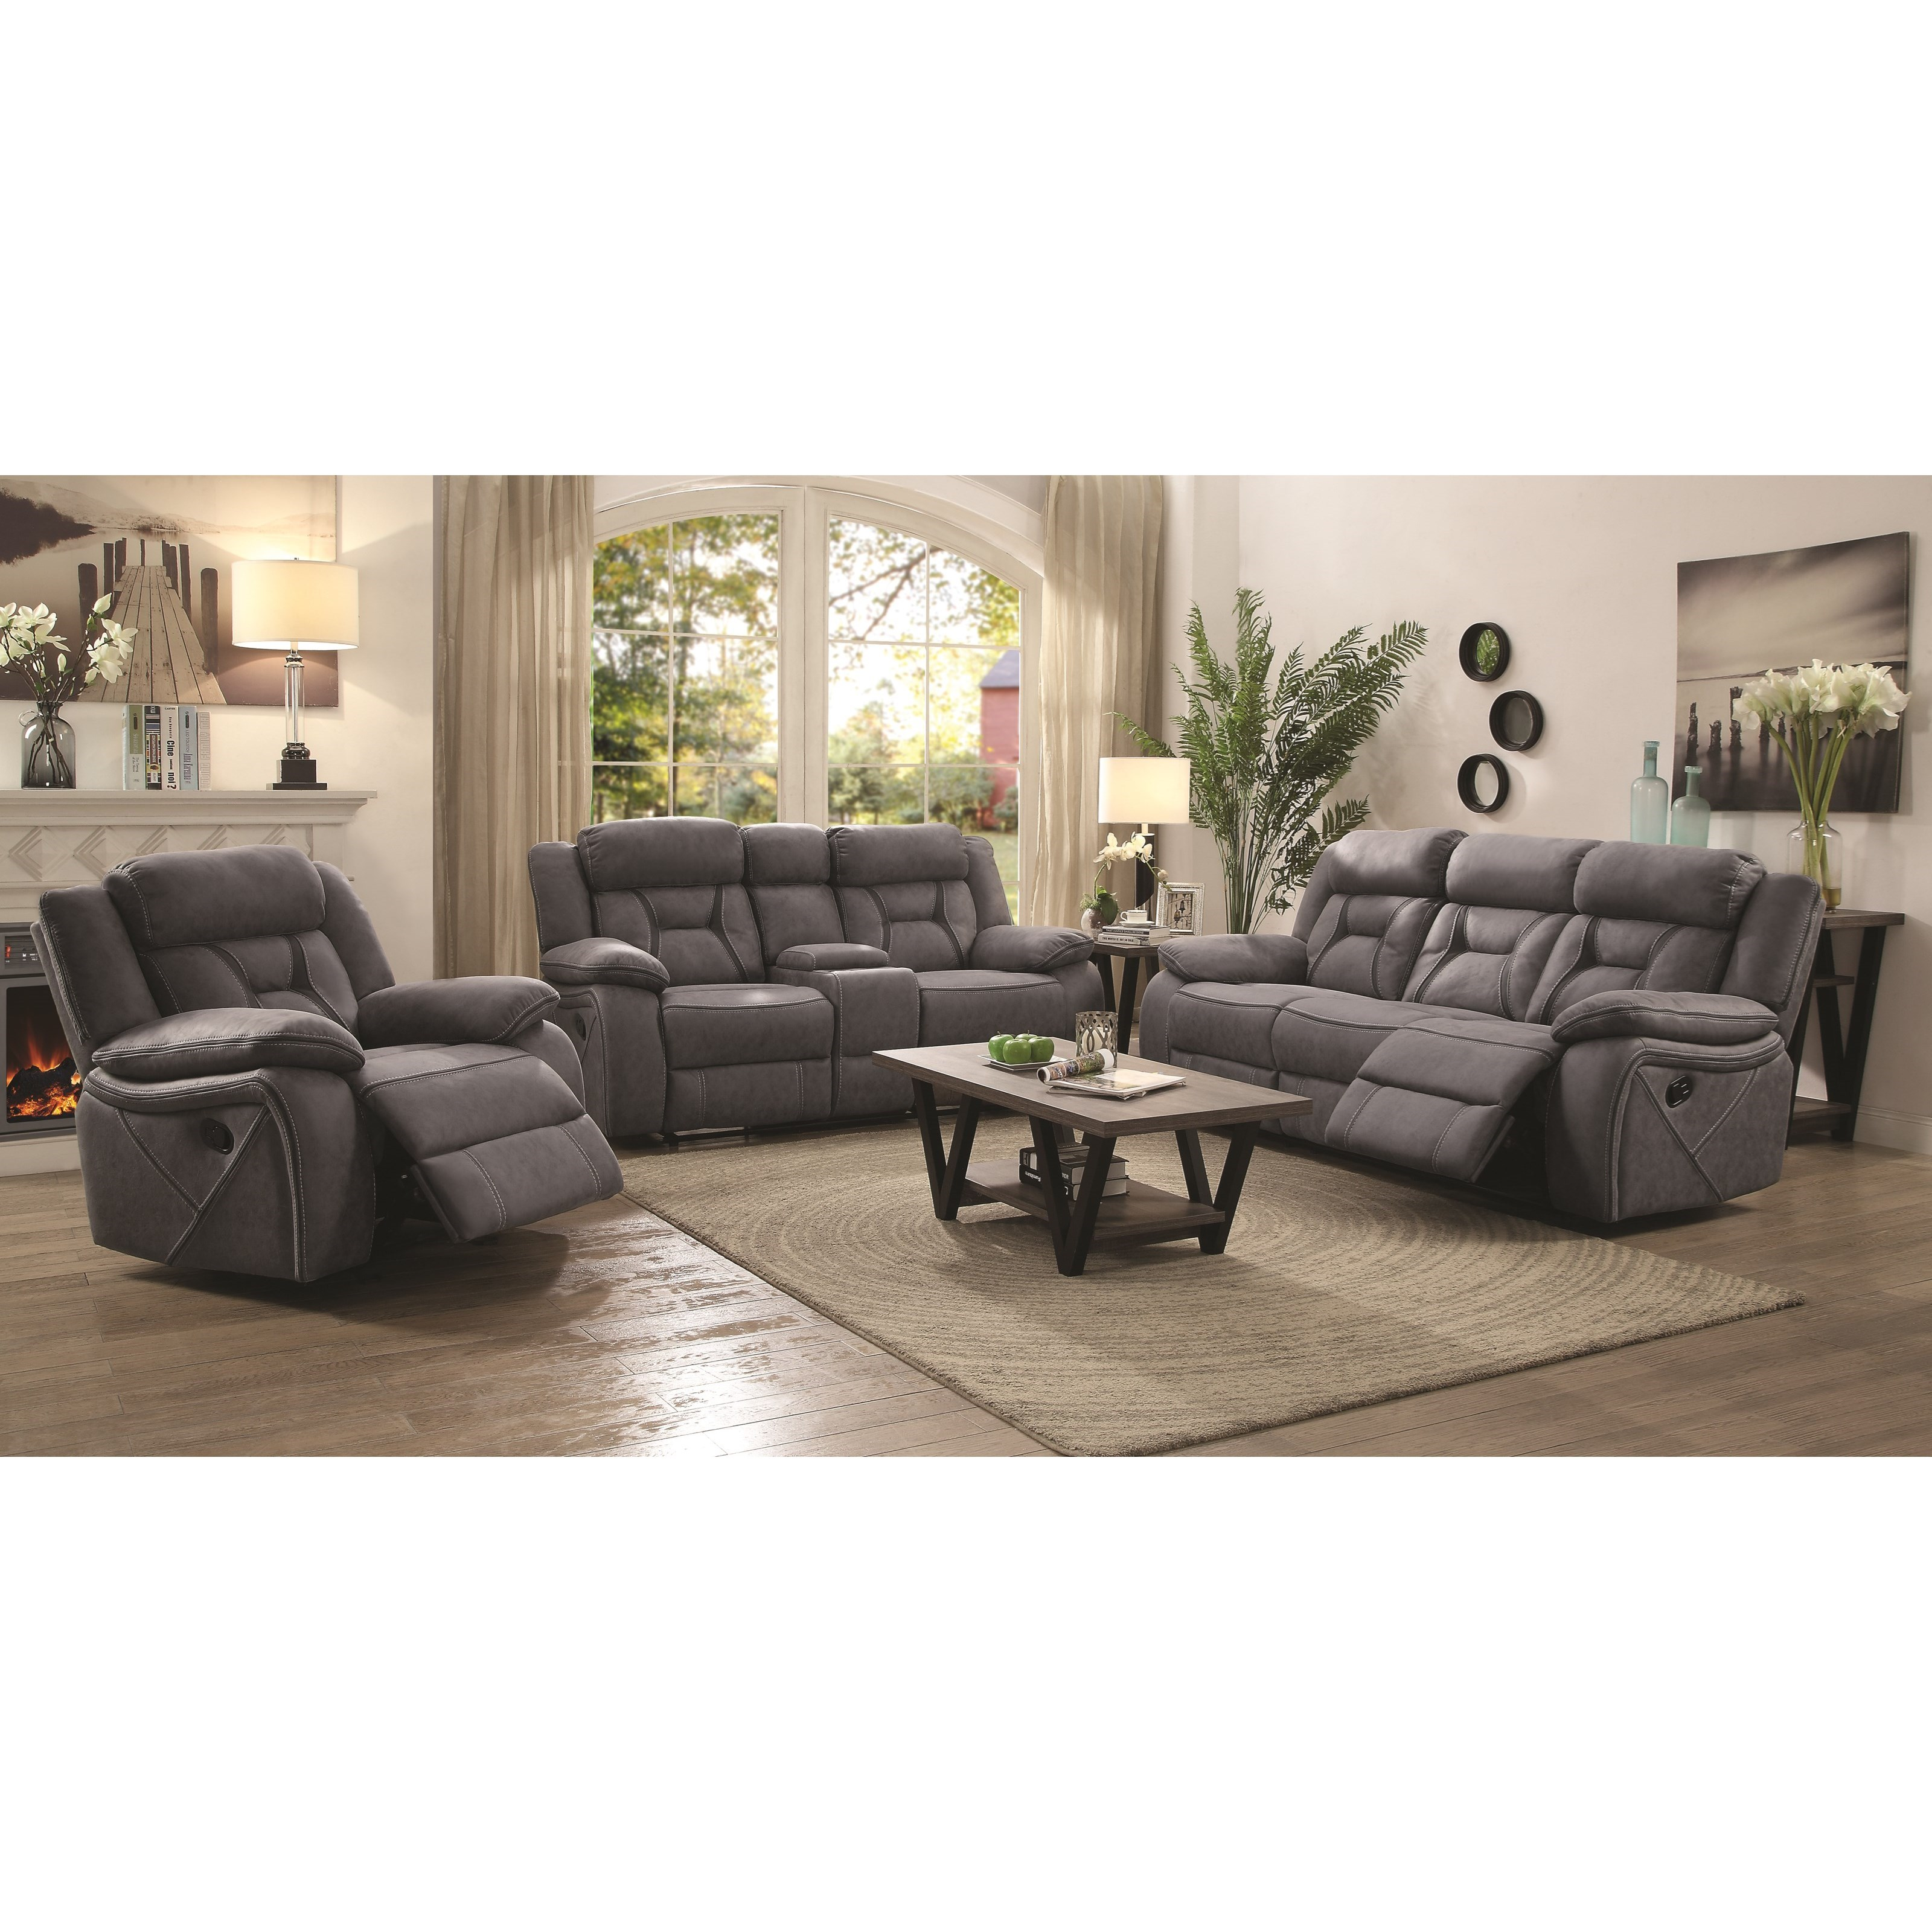 Clearance Furniture Nj: Coaster Houston Casual Pillow-Padded Reclining Sofa With